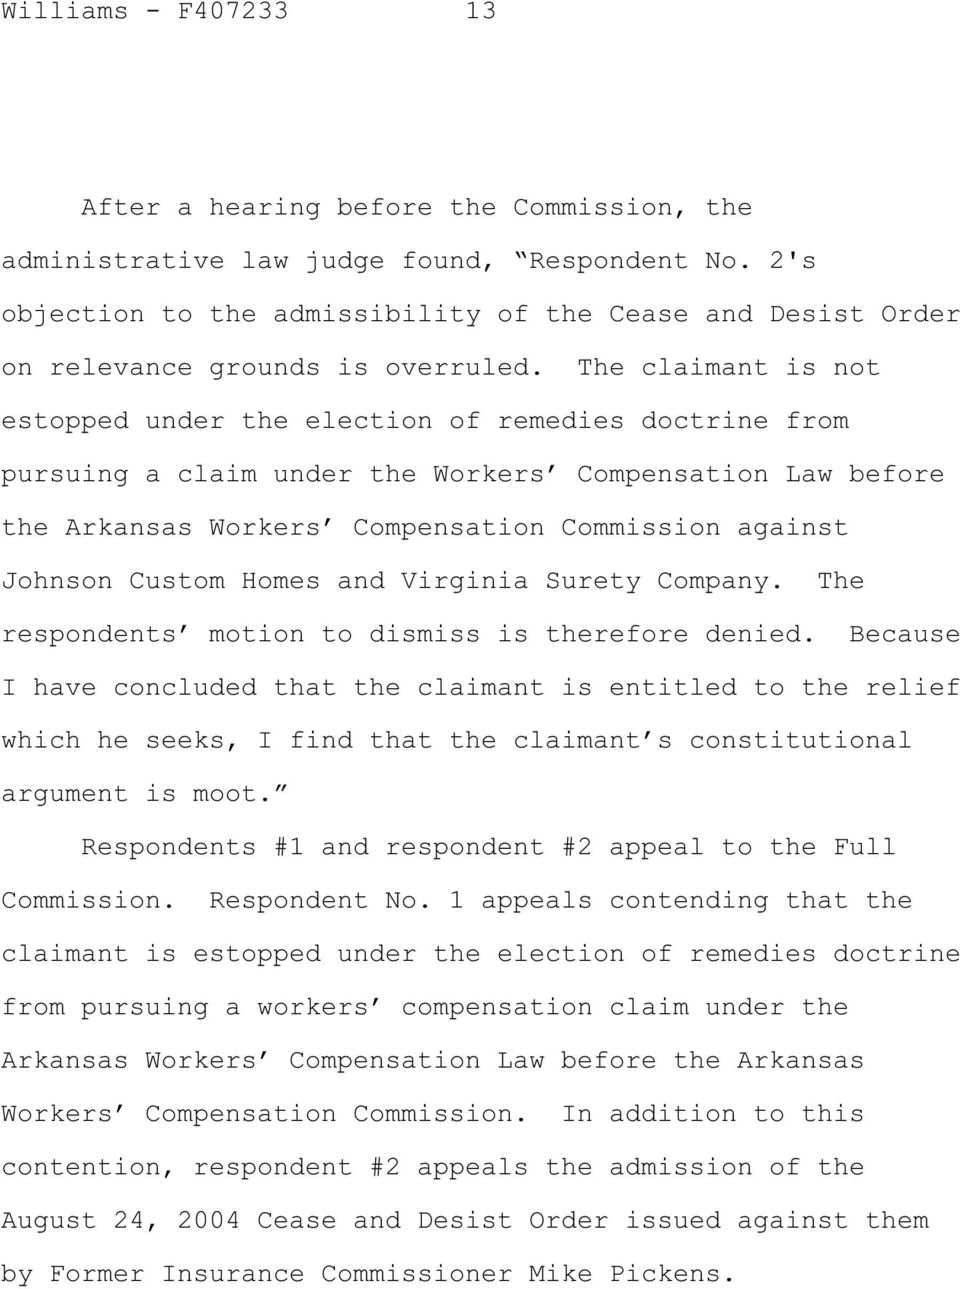 The claimant is not estopped under the election of remedies doctrine from pursuing a claim under the Workers Compensation Law before the Arkansas Workers Compensation Commission against Johnson